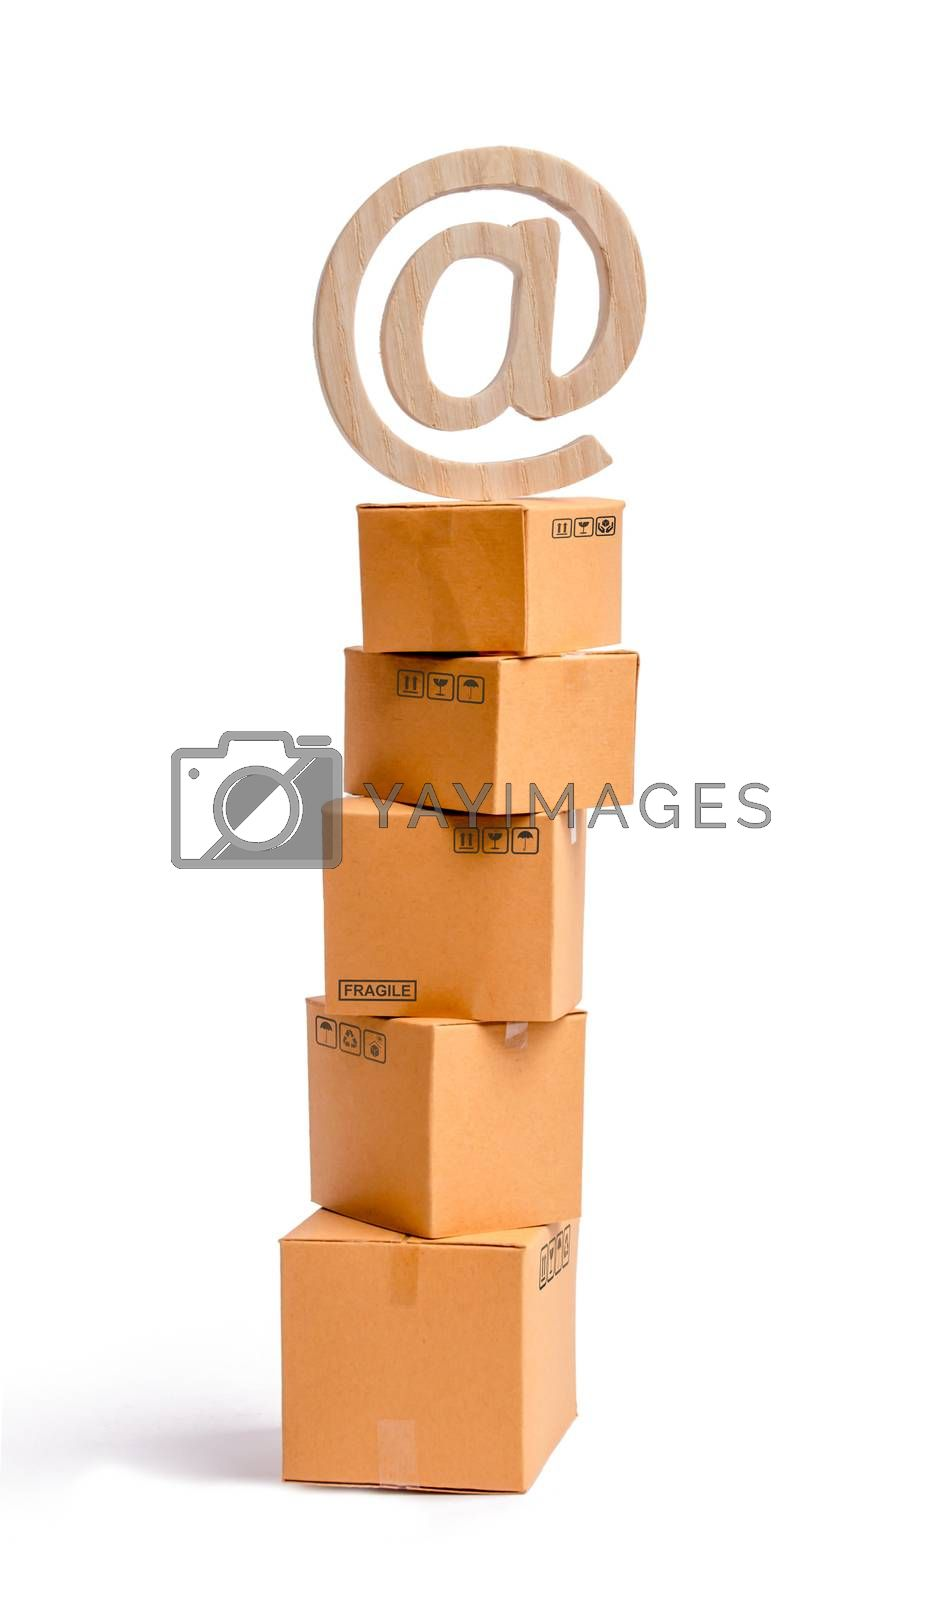 A tower of cardboard boxes and an email symbol on top. The concept of online sales, shopping and online shopping. Realization of goods and services through the Internet. buying and selling goods